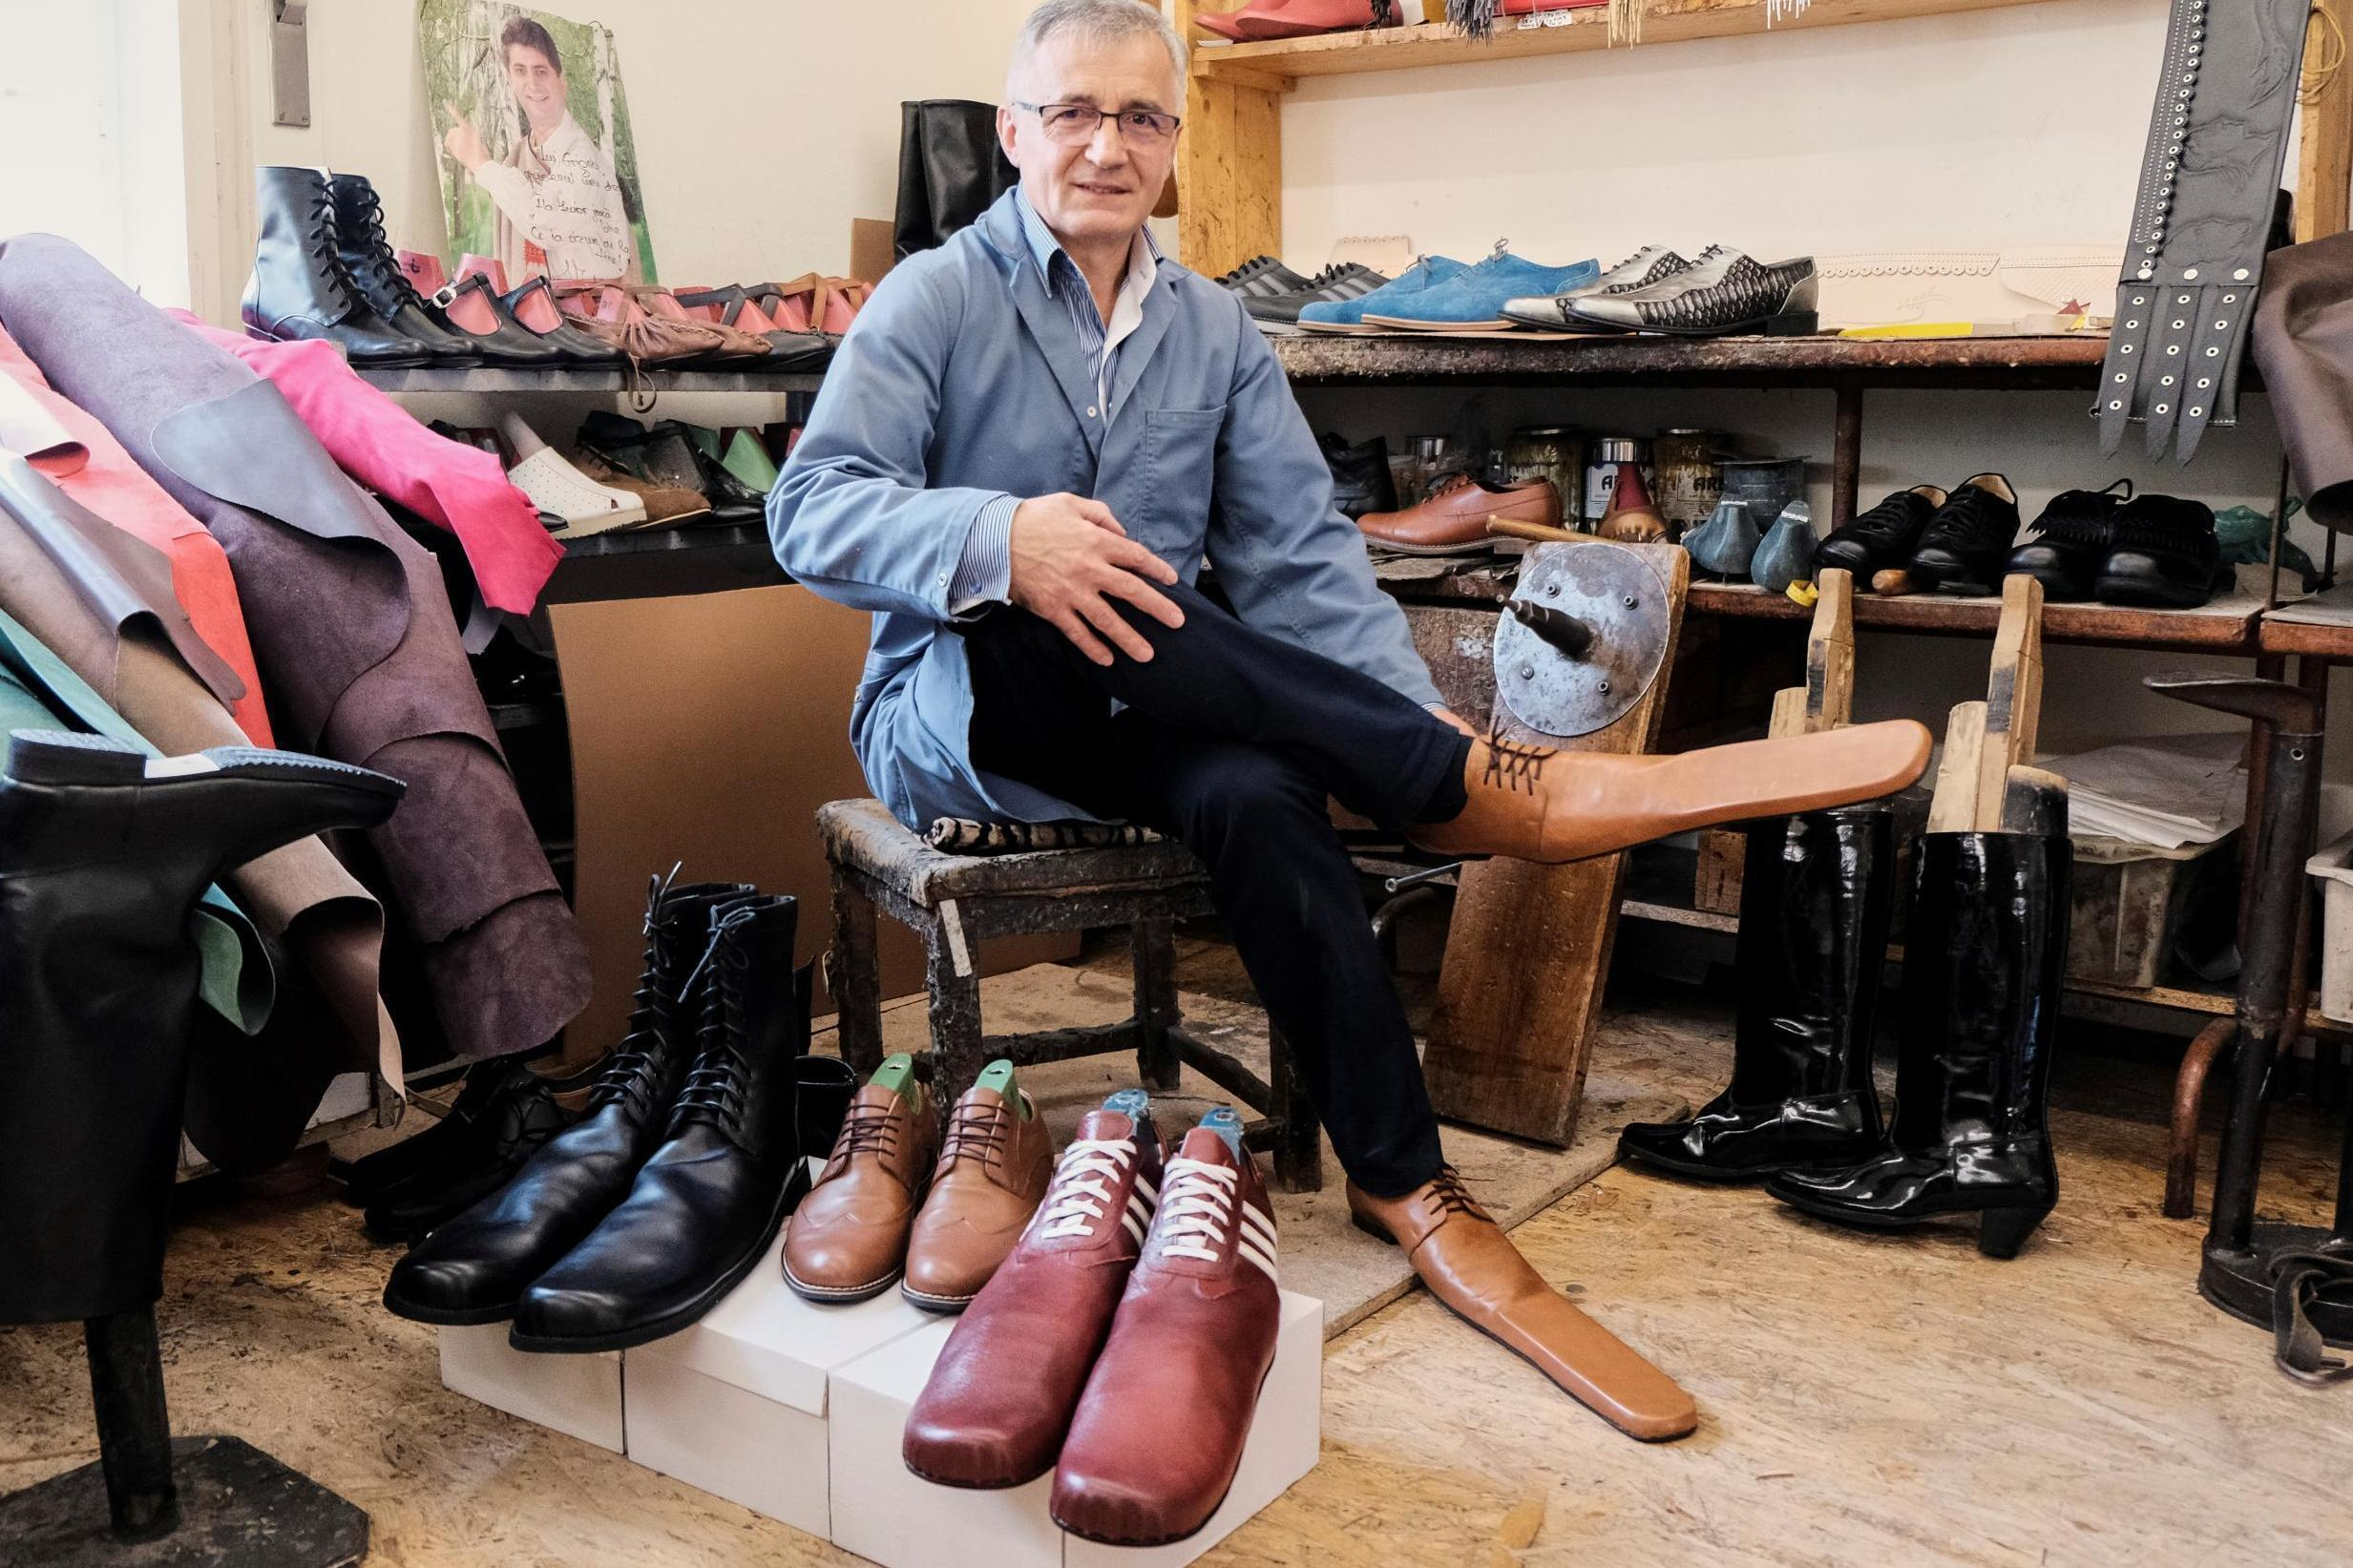 Shoemaker makes size 75 shoes for social distancing